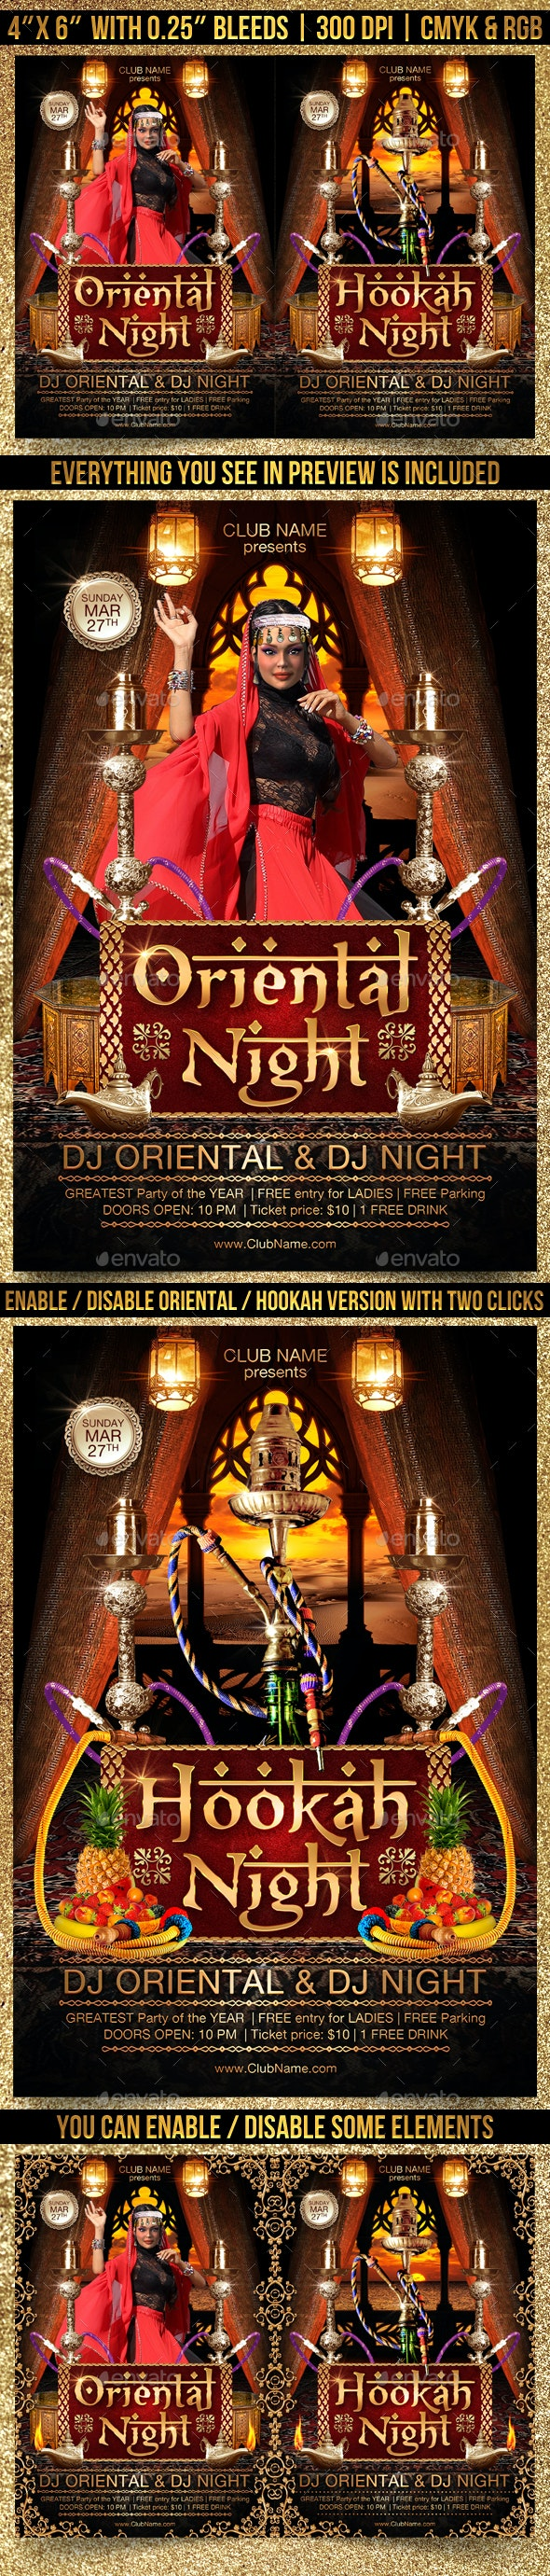 Oriental and Hookah Night Flyer - Clubs & Parties Events